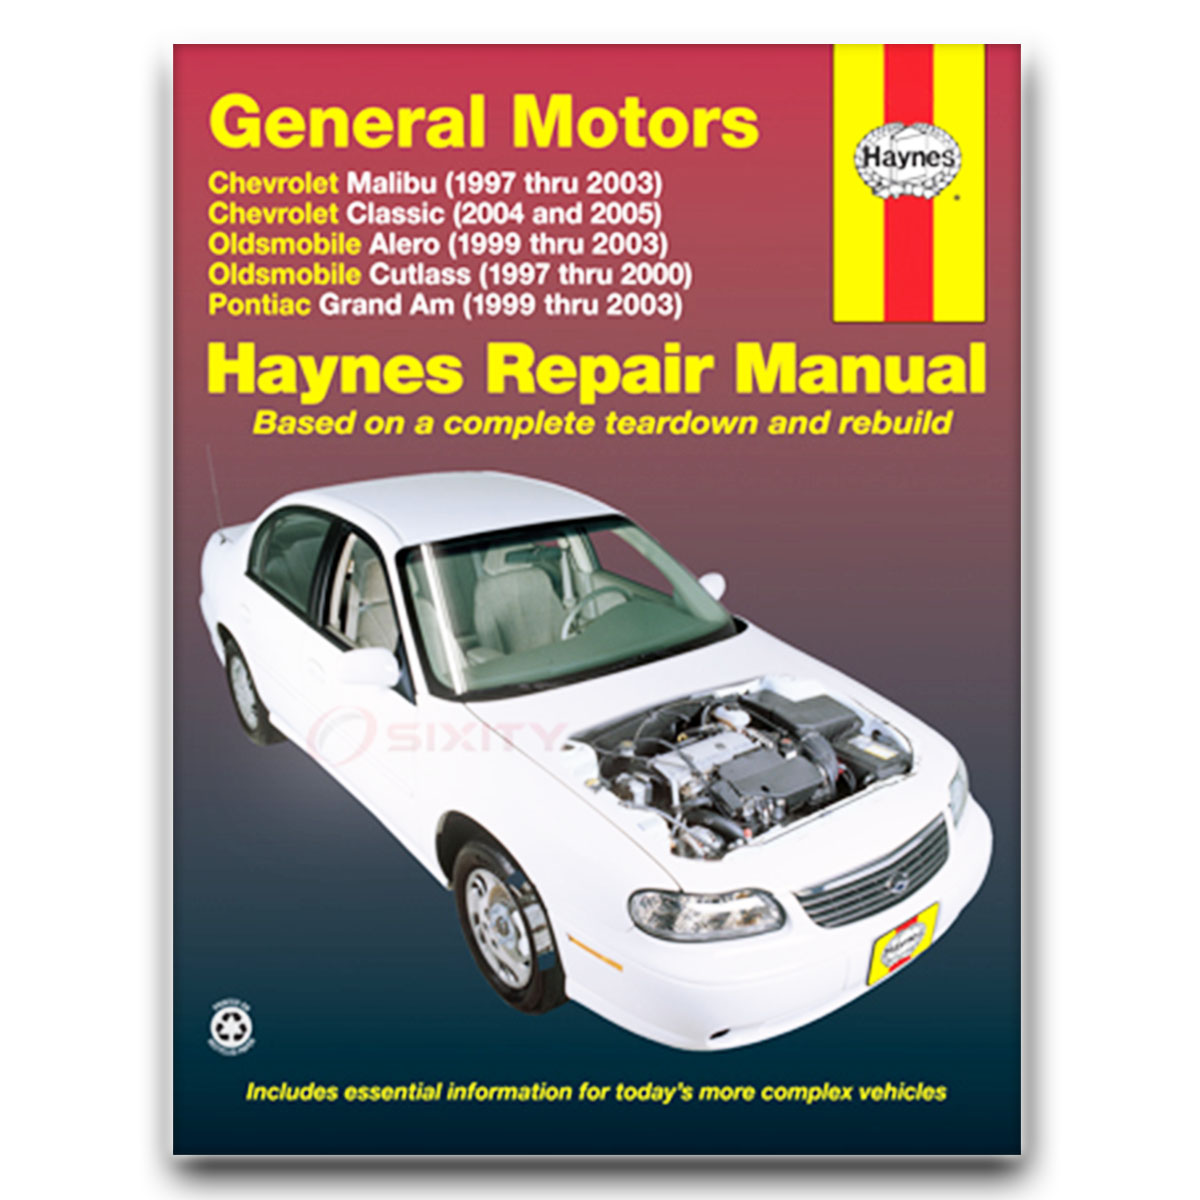 haynes repair manual for chevy malibu ls base shop service garage rh ebay  com 2008 chevrolet malibu service manual 2015 chevrolet malibu owners manual  pdf